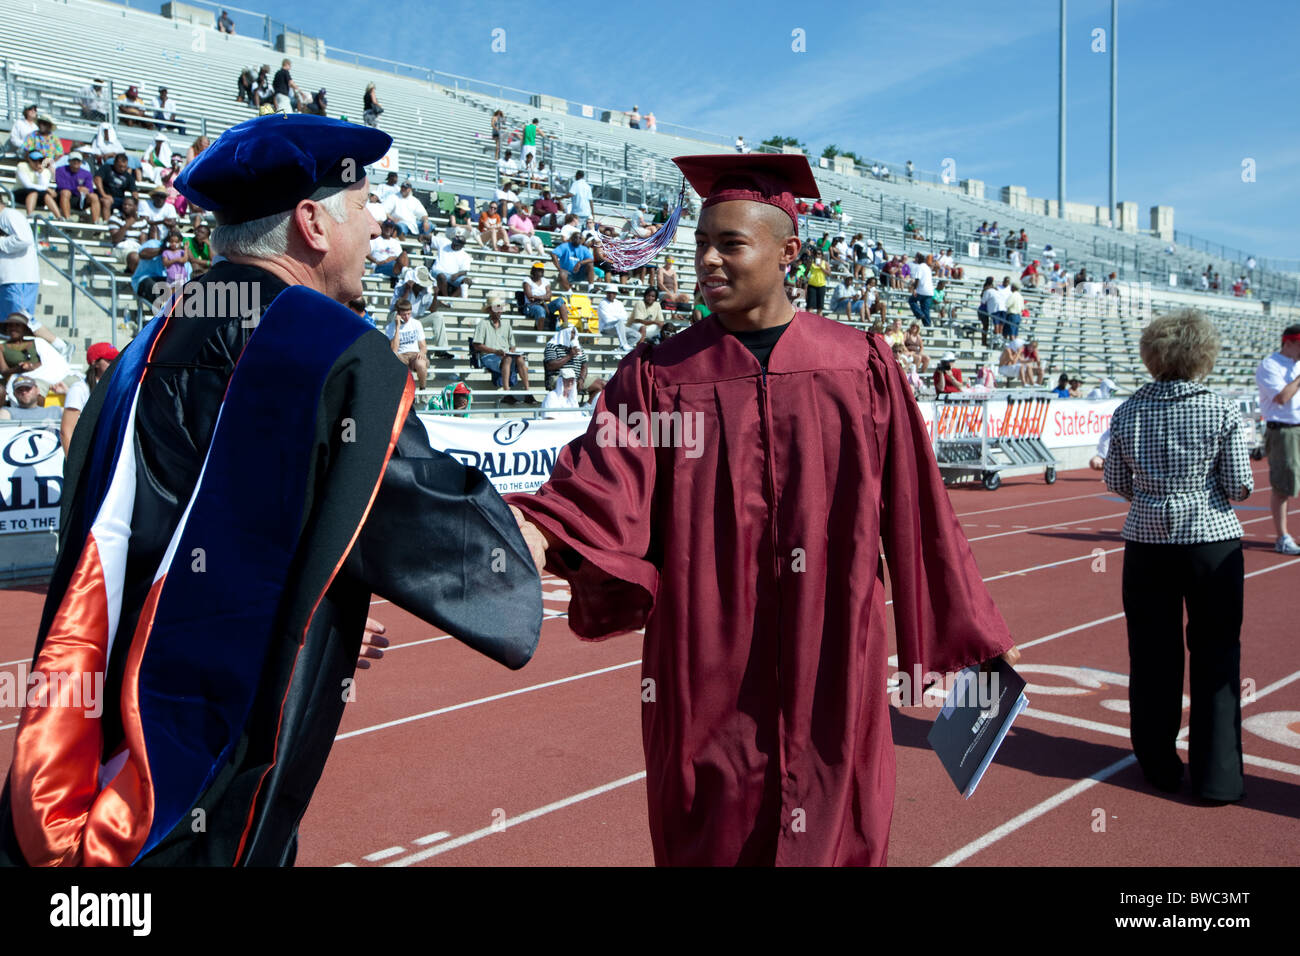 African-American student receives high school diploma from school official during outdoor graduation ceremony - Stock Image